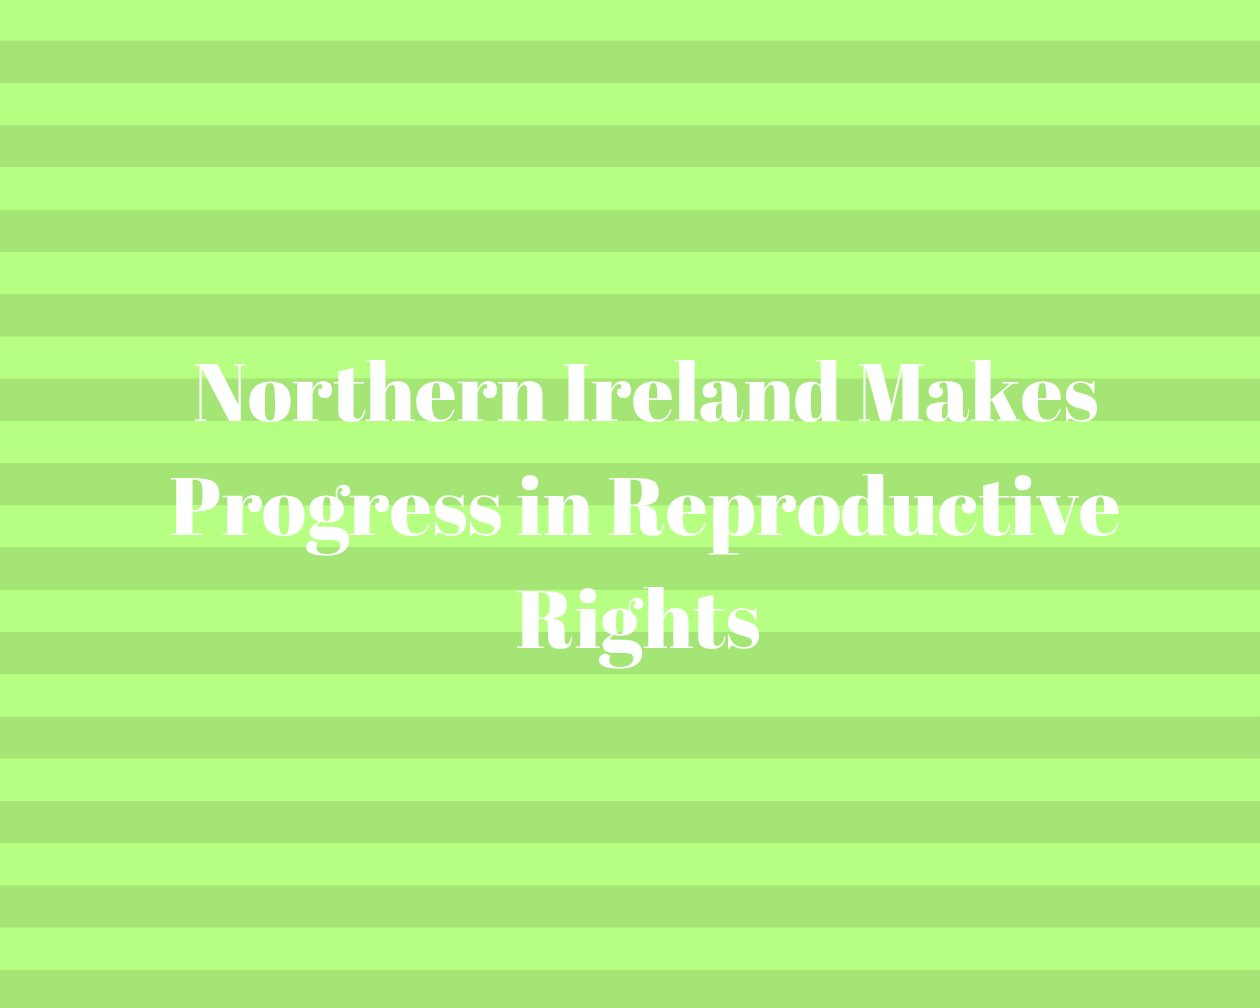 Northern Ireland Makes Progress in Reproductive Rights